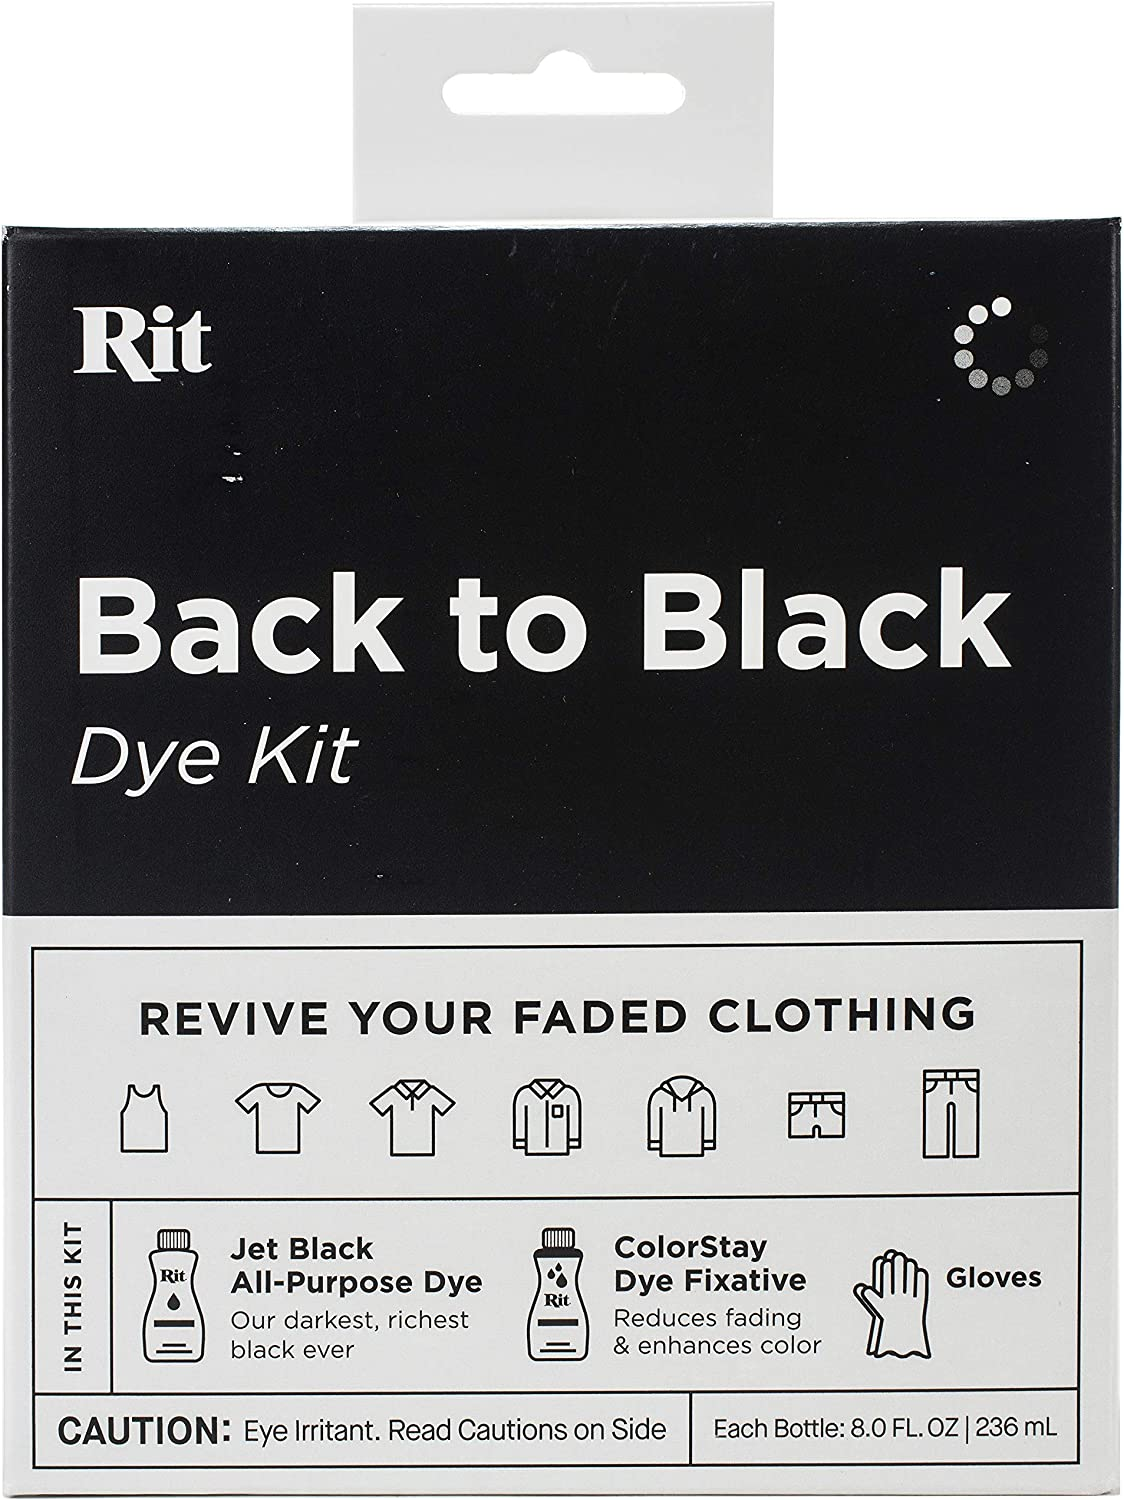 NAKOMA PRODUCTS RIT TIE DYE KIT BACK2BLACK, Back To Black